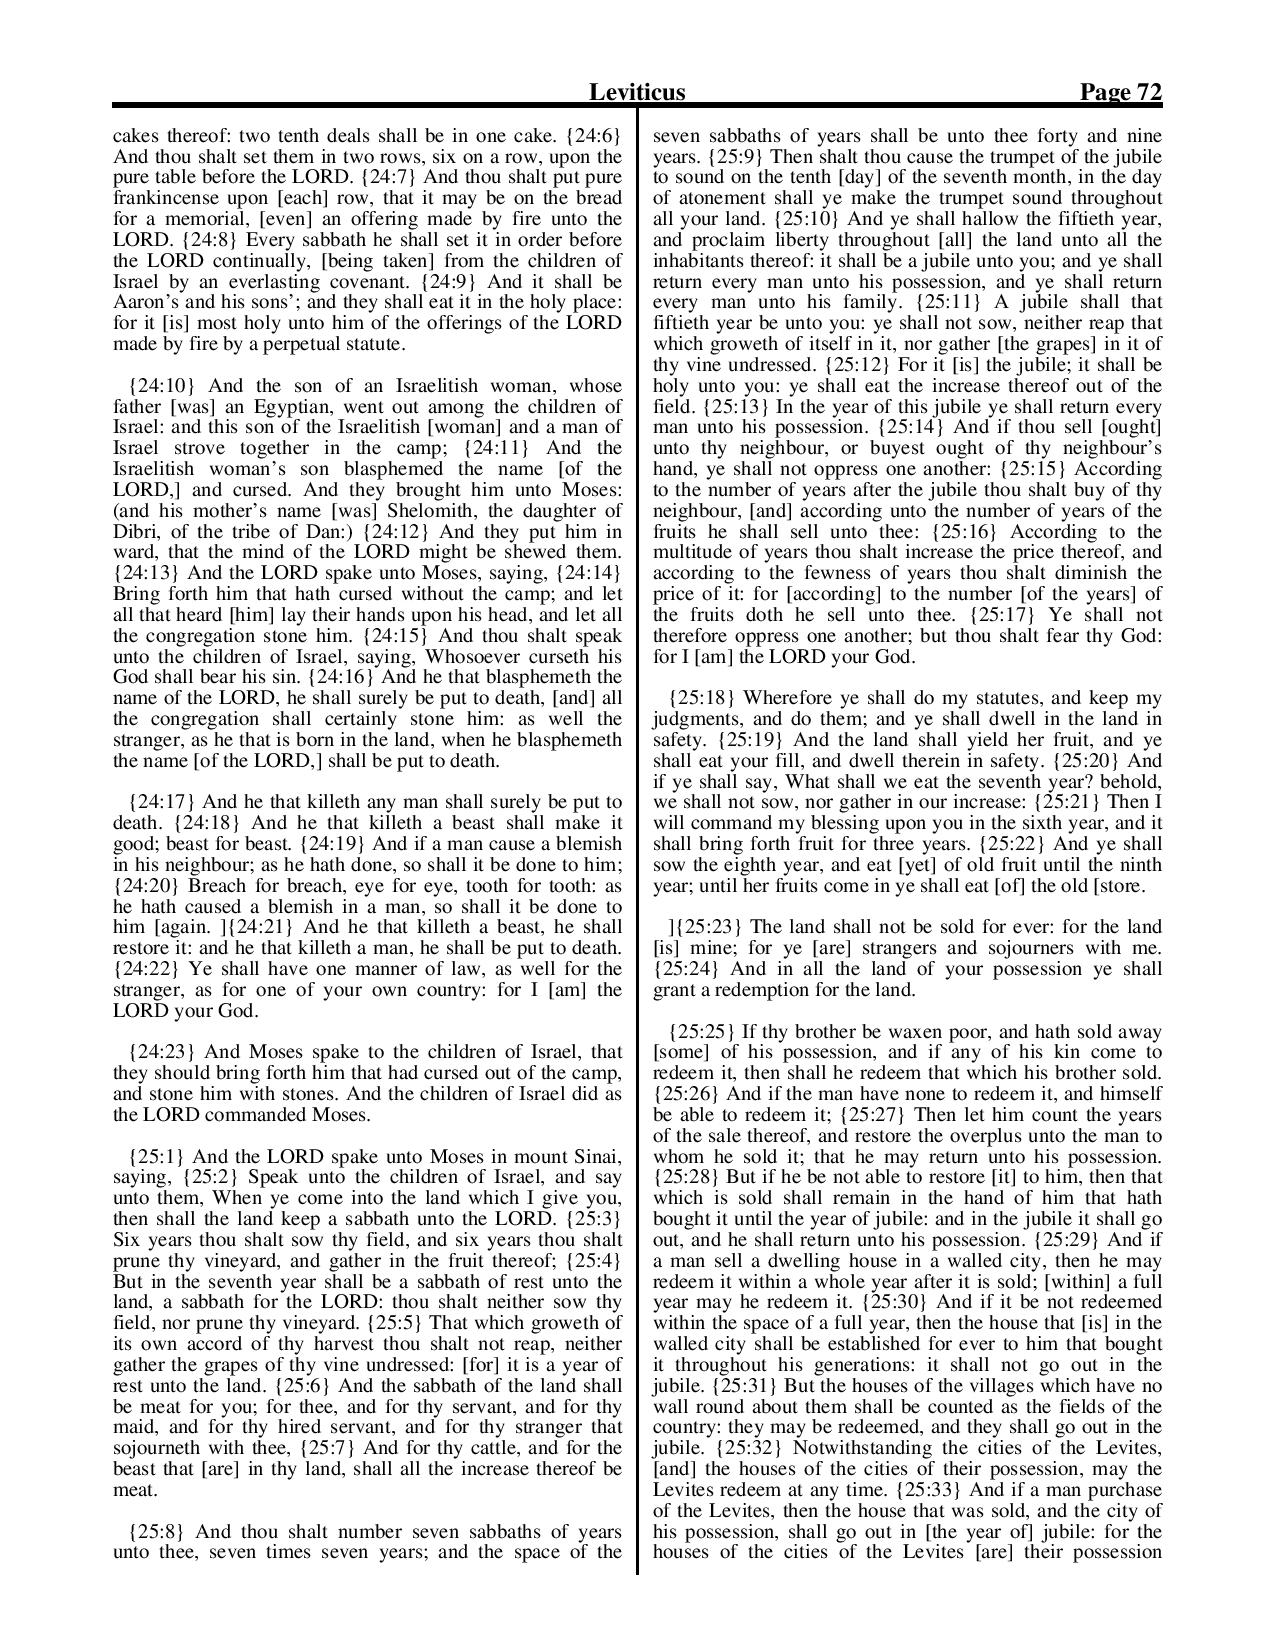 King-James-Bible-KJV-Bible-PDF-page-093